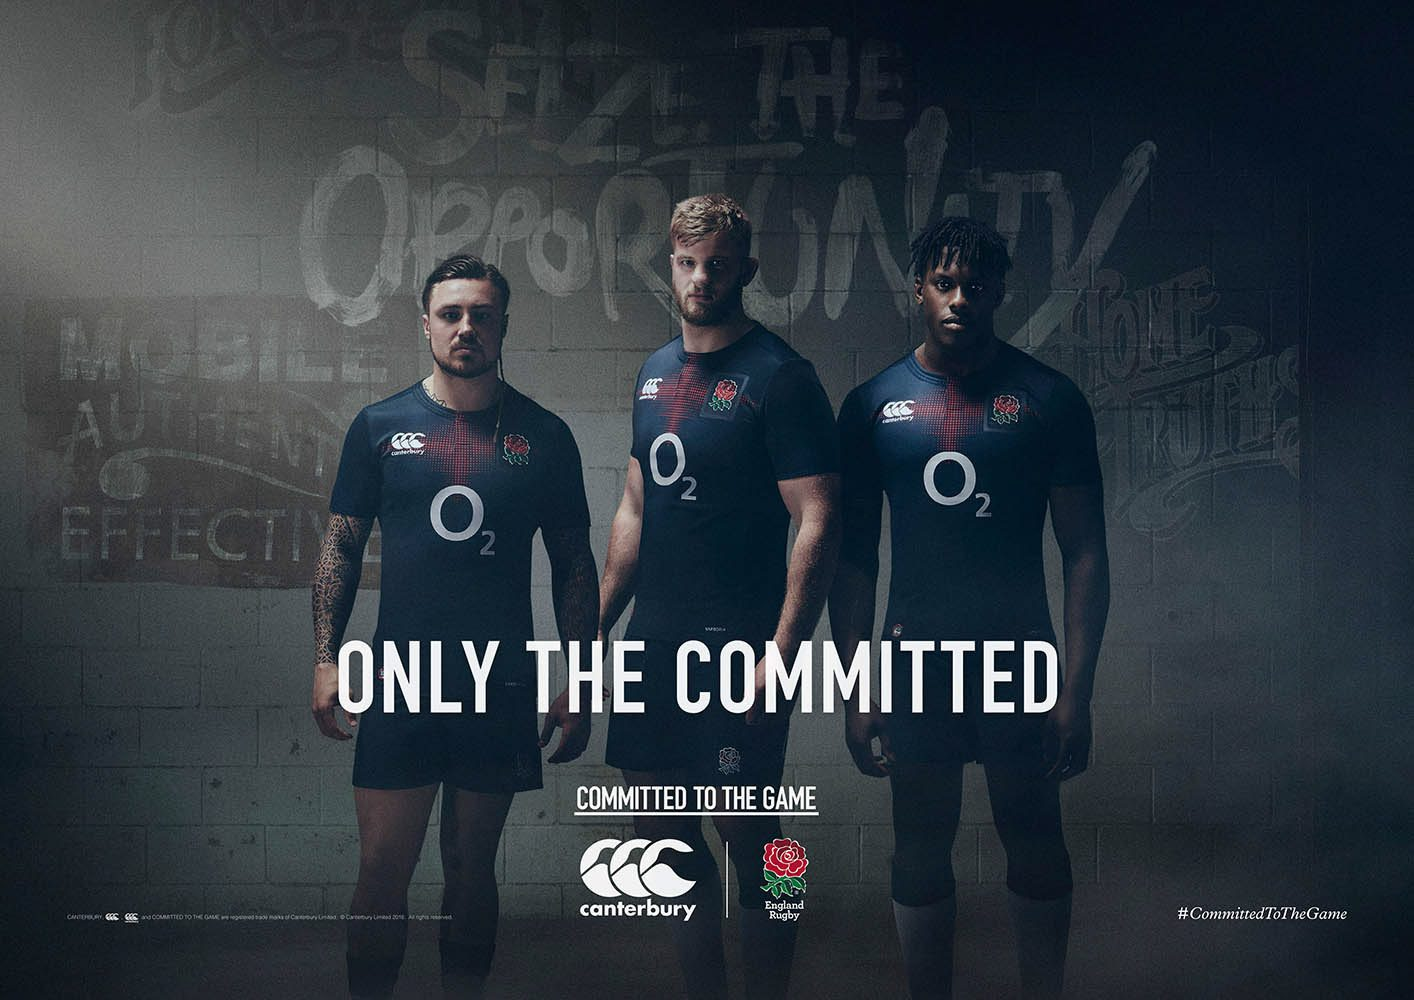 English Rugby / Canterbury Clothing